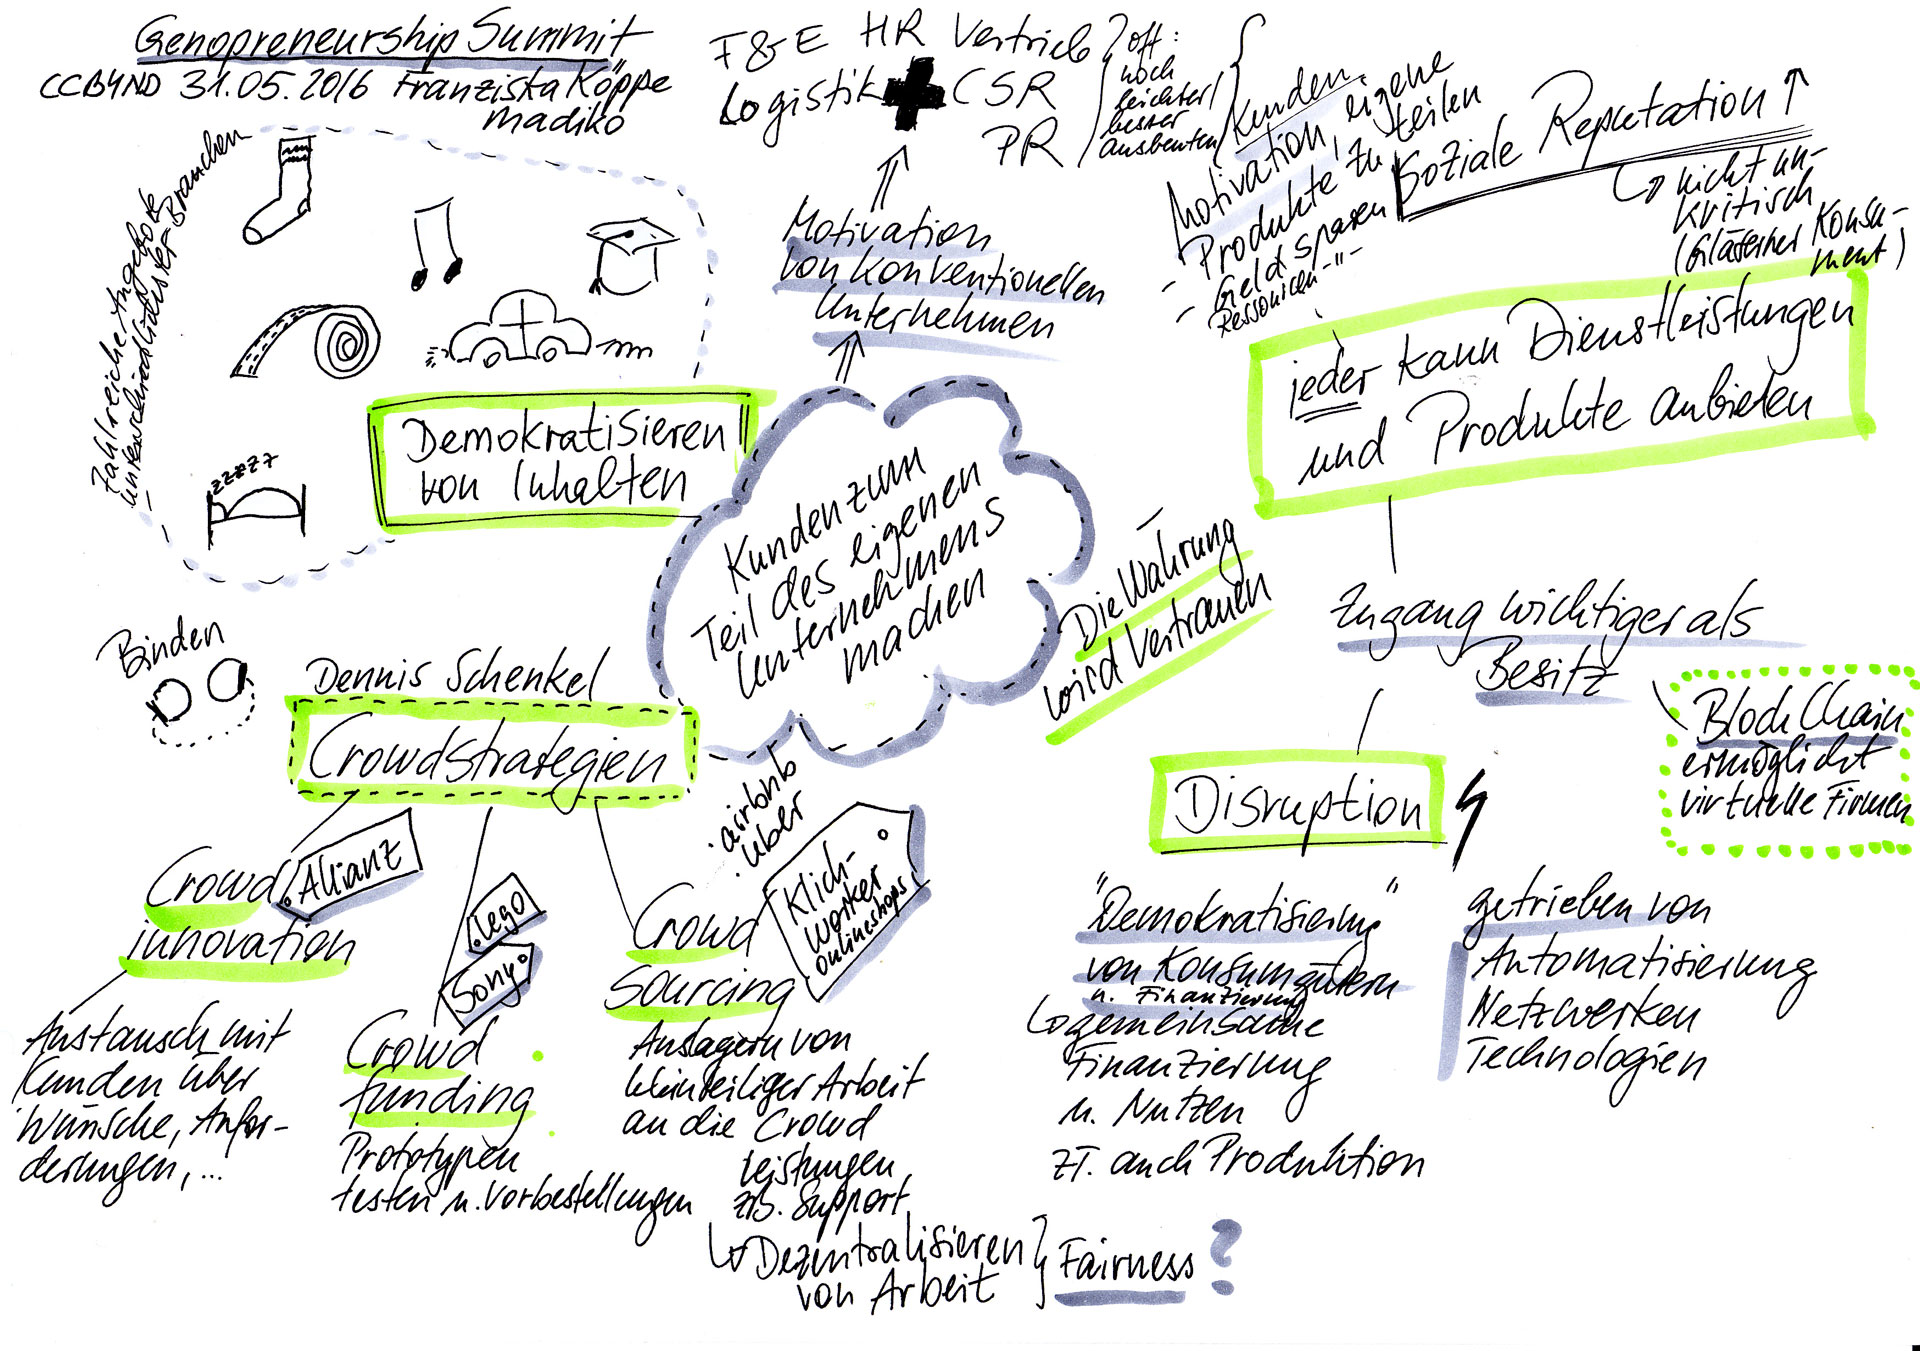 Crowd Economy mit Crowd-Innovation, Crowd-Funding und Crowd-Sourcing <br>Sketchnotes Genopreneurship Summit 2016. Bild: cc Franziska Köppe | madiko sketchnotes